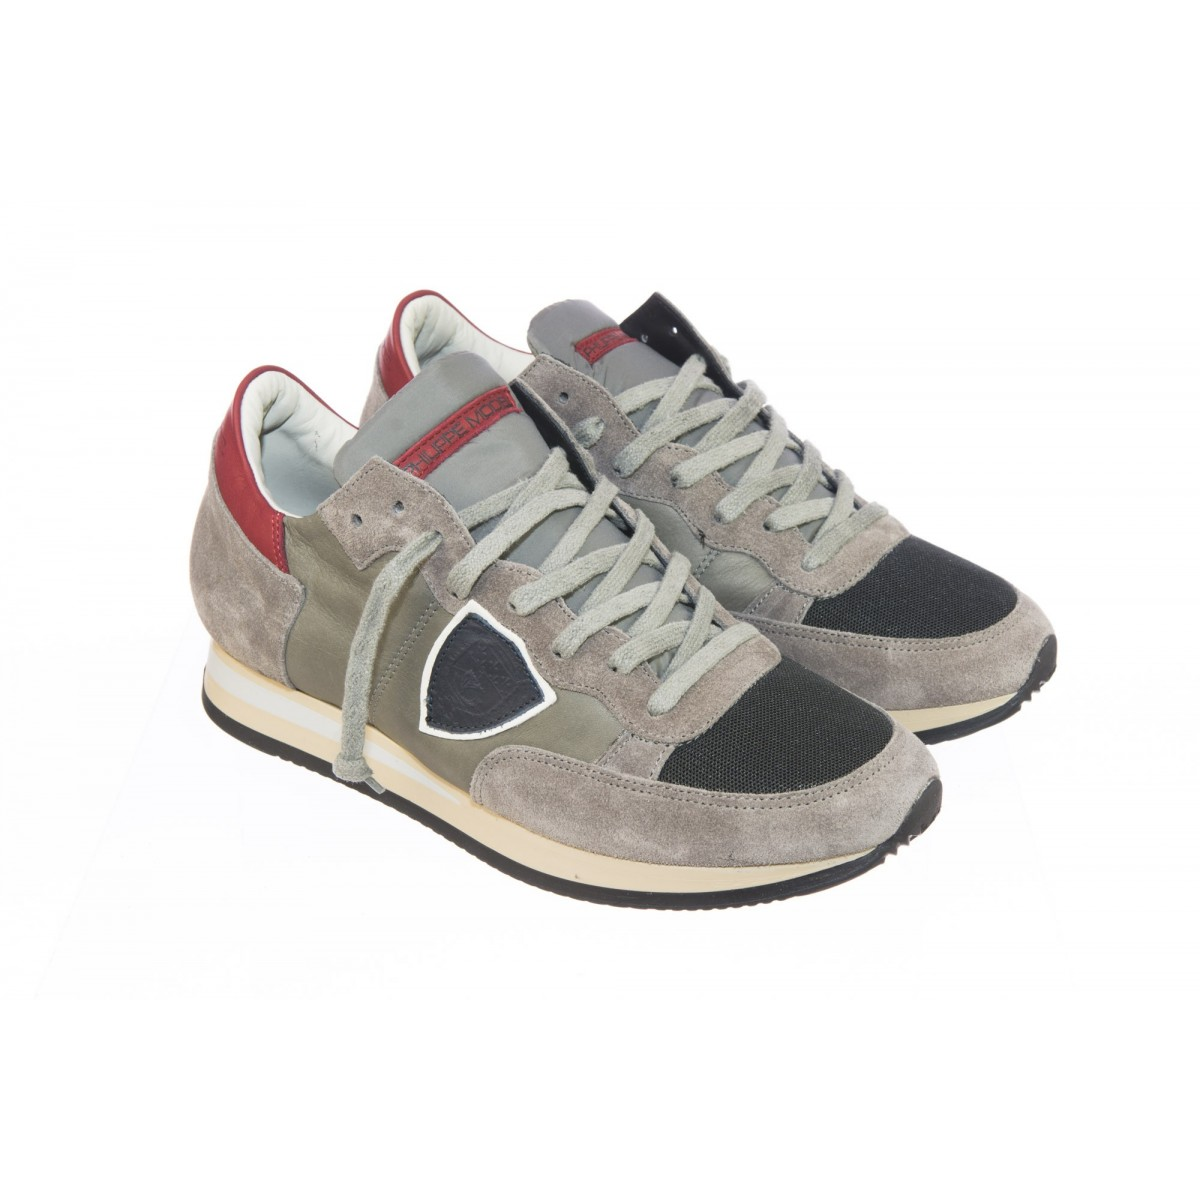 Scarpa Philippe model paris - Trlu tropez world low